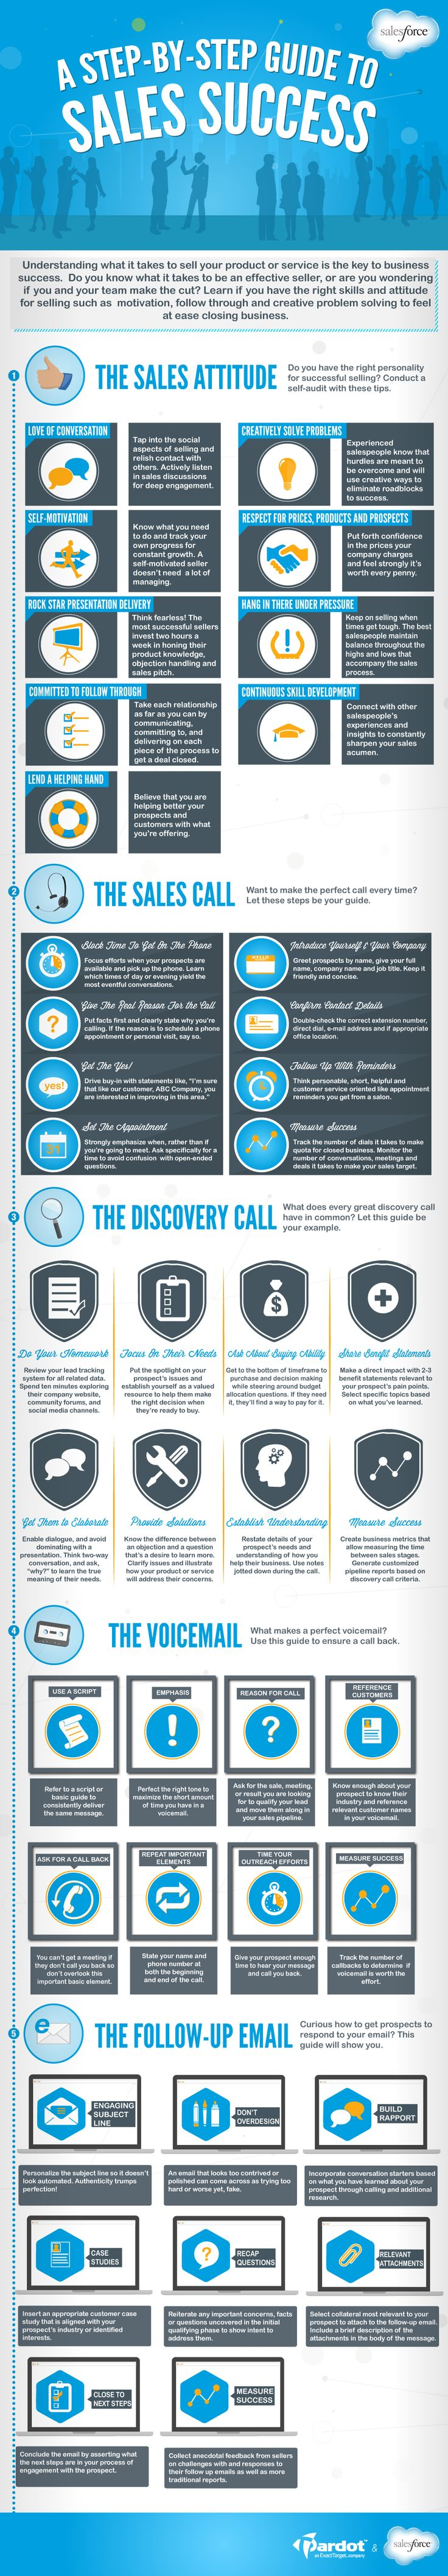 A Step By Step Guide To Sales Success #Infographic #Marketing #Sales #Business